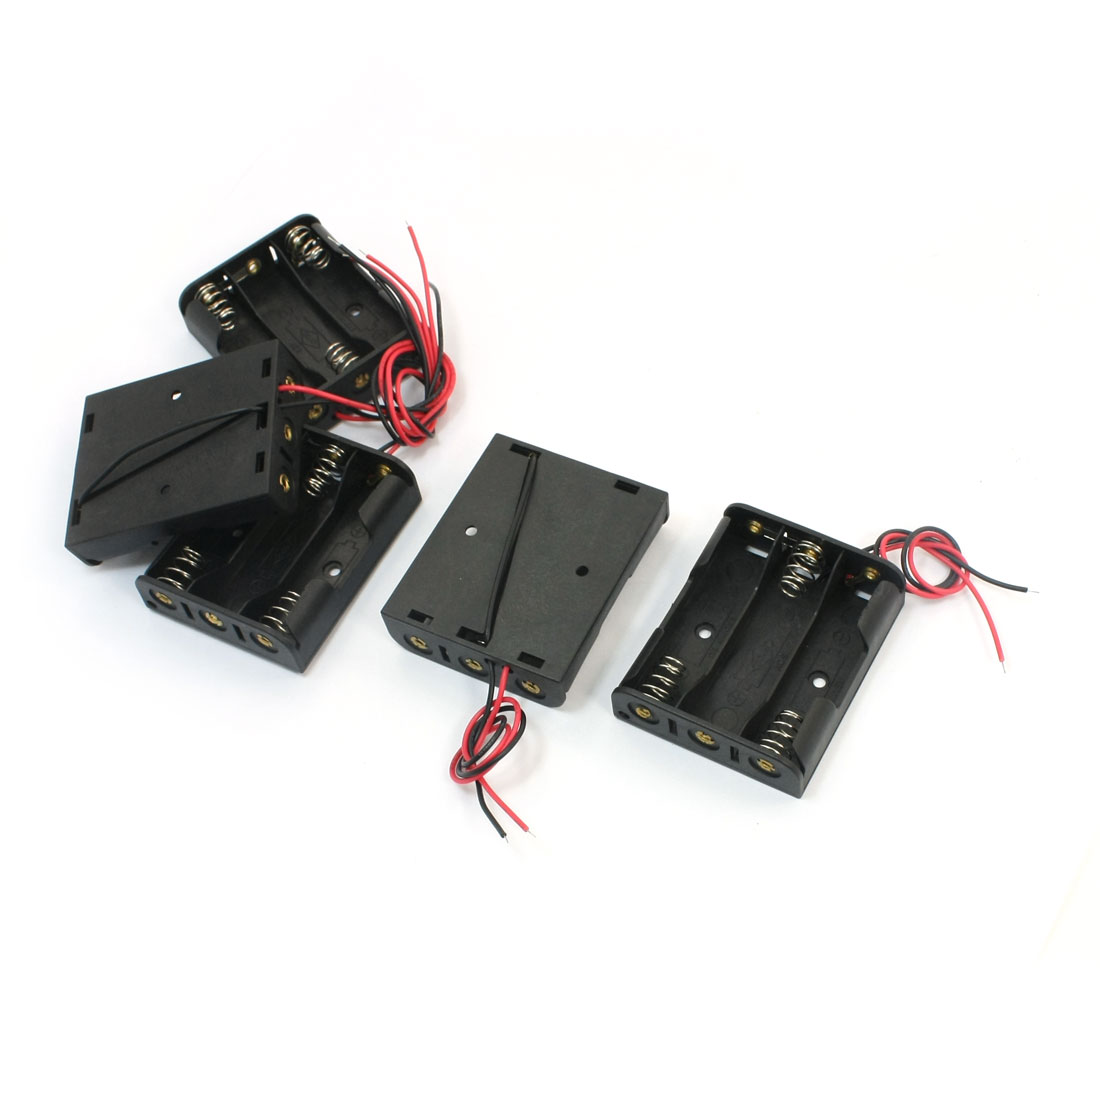 5 PCS Spring Loaded Plastic 3 x 1.5V AA Battery Holders Cases Boxes